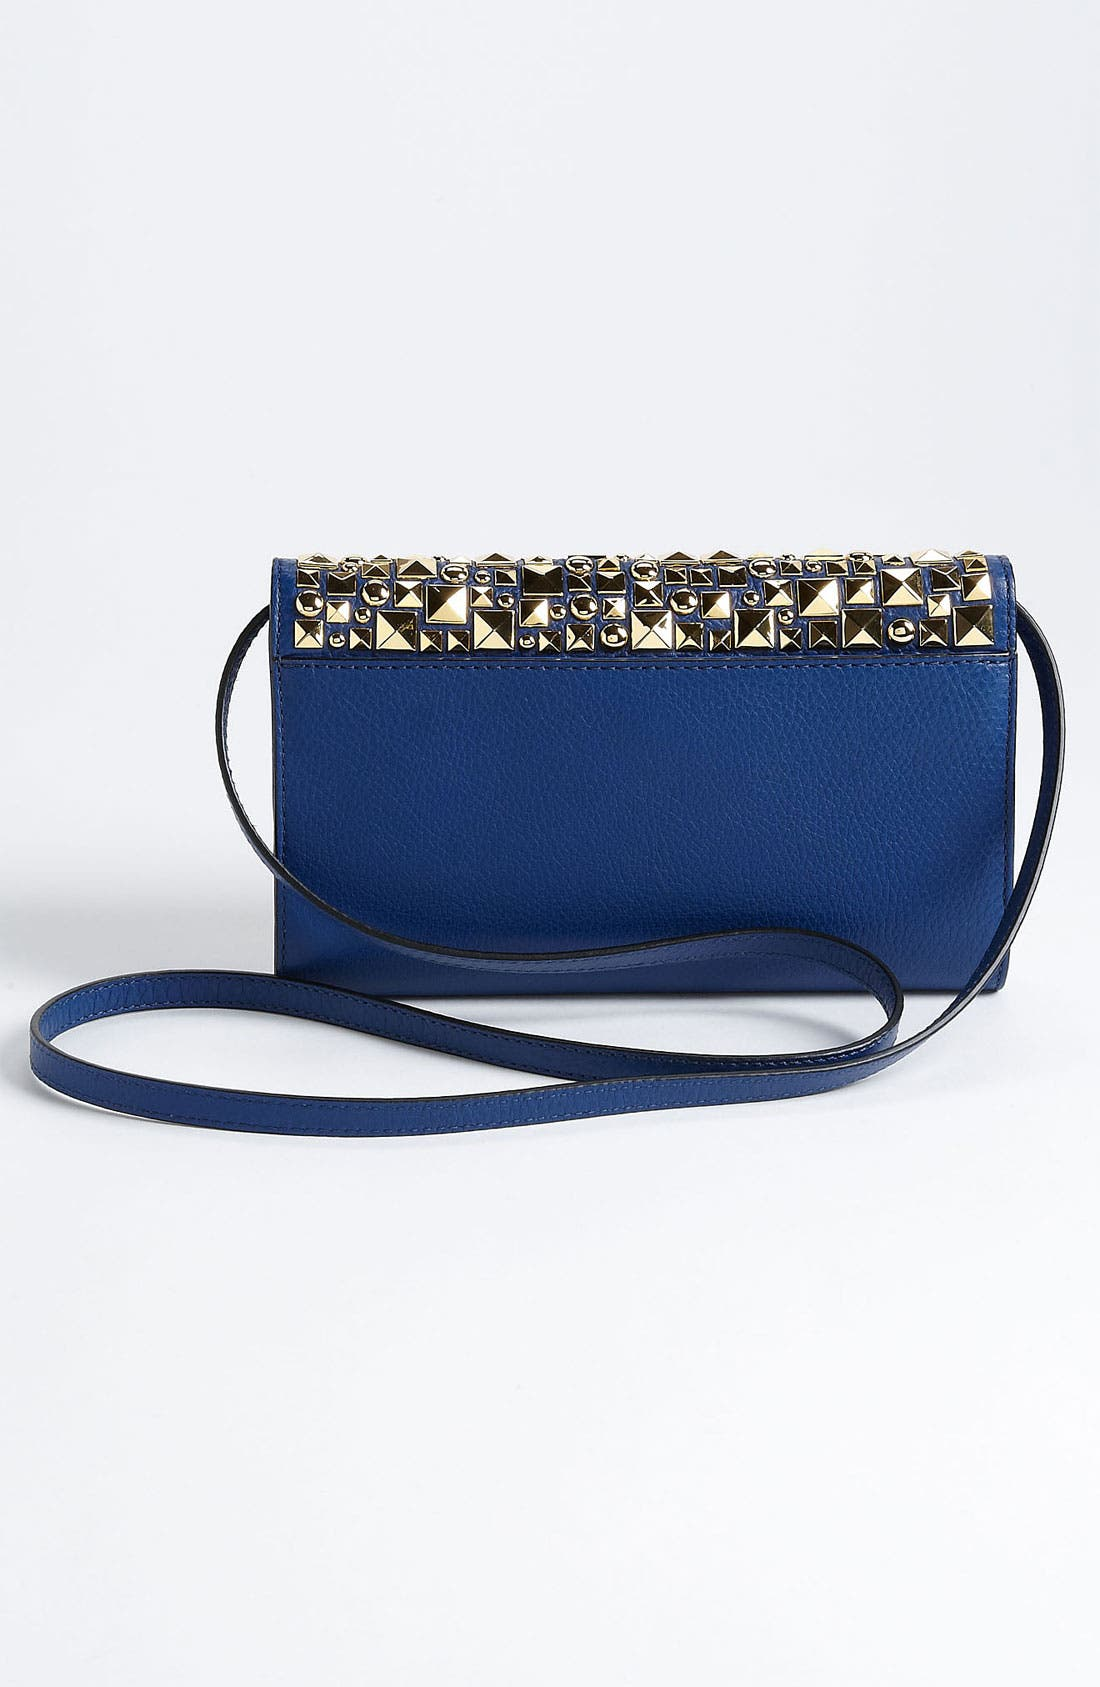 Alternate Image 4  - Michael Kors 'Gia' Studded Leather Clutch